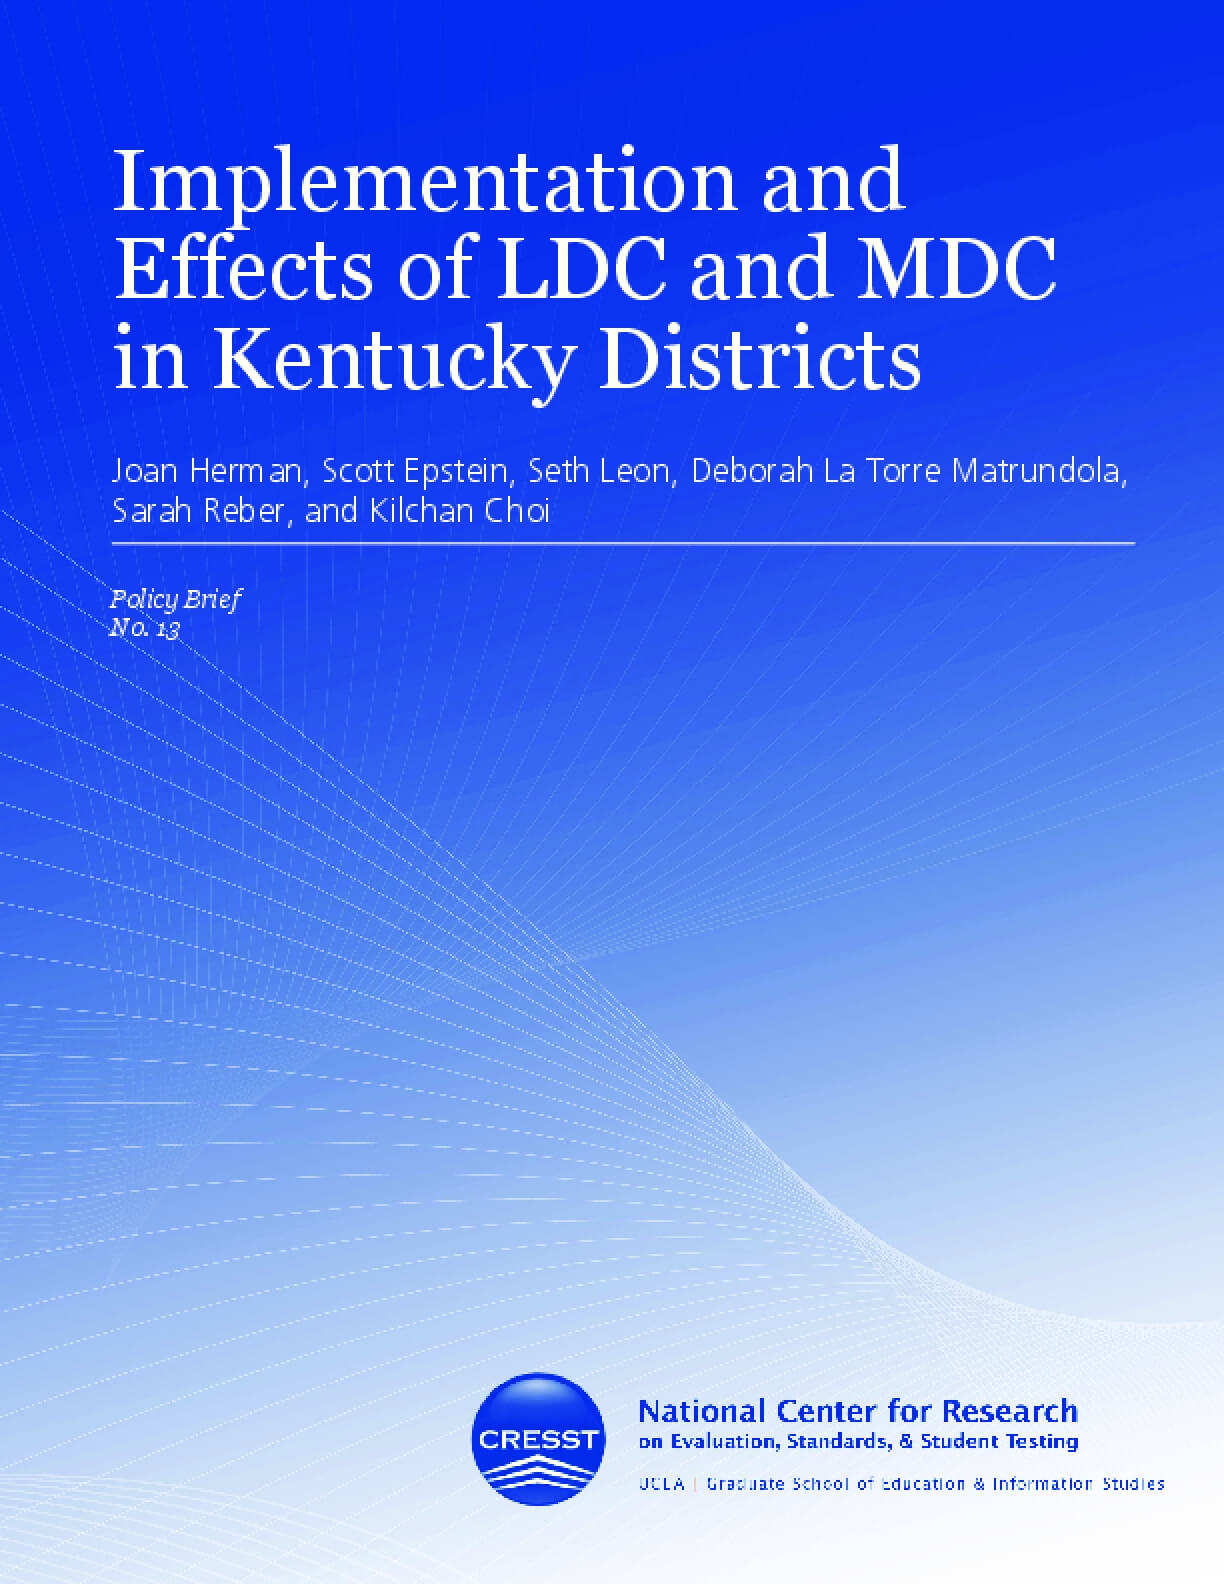 Implementation and Effects of LDC and MDC in Kentucky Districts